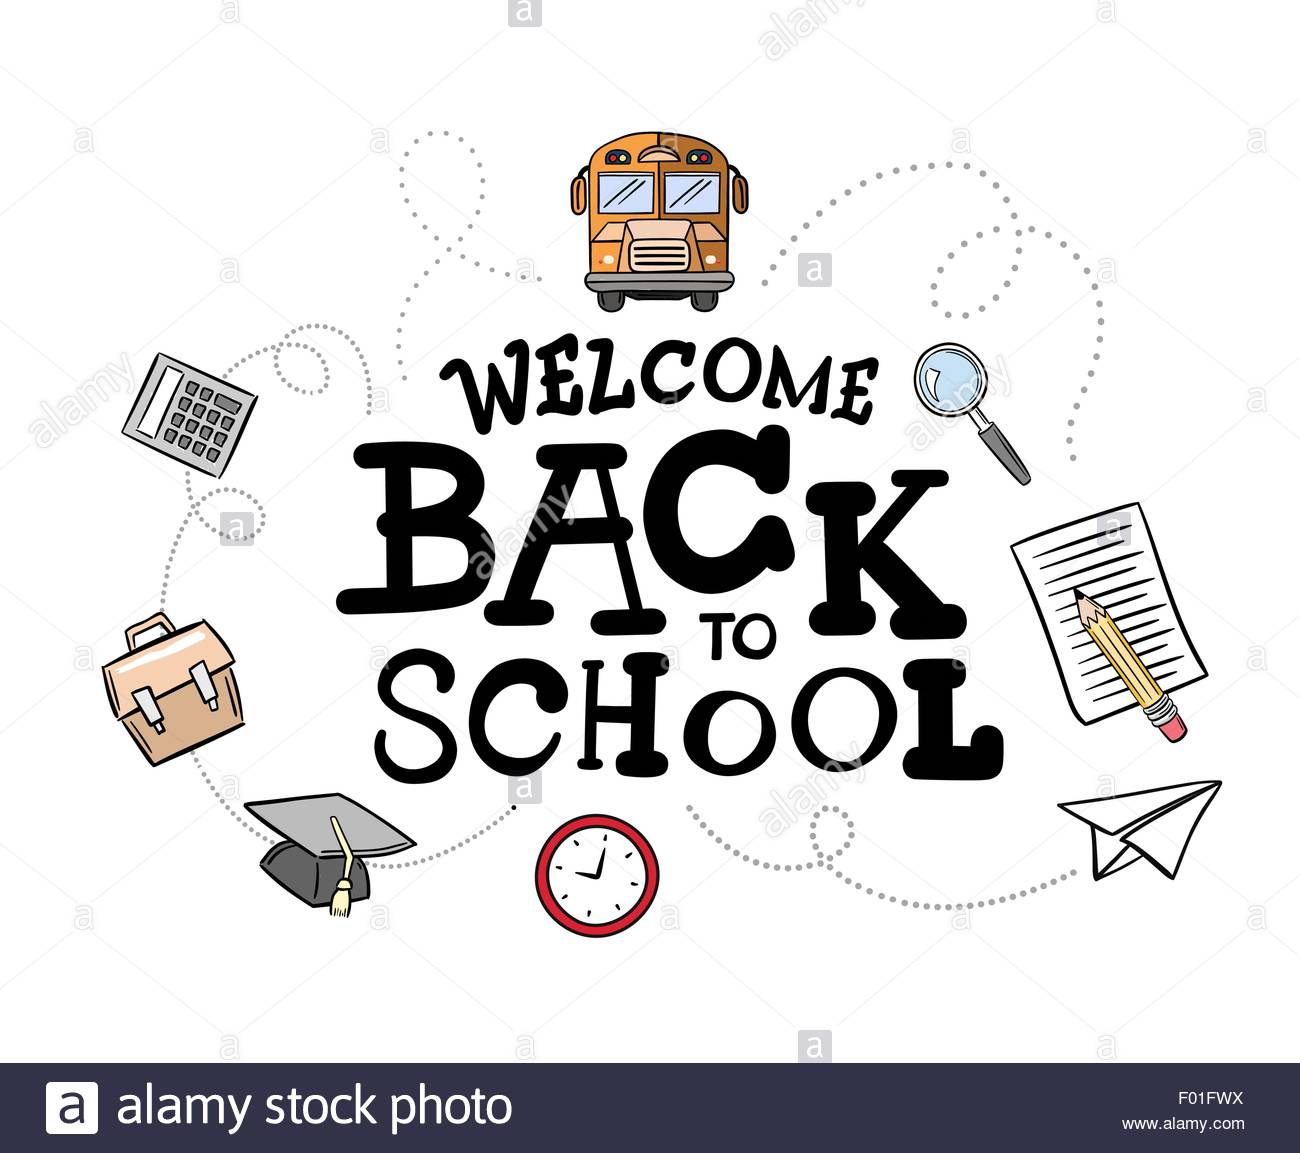 Back to school message clipart clipart freeuse stock Welcome Back To School Message Surrounded By Icons Vector Against ... clipart freeuse stock